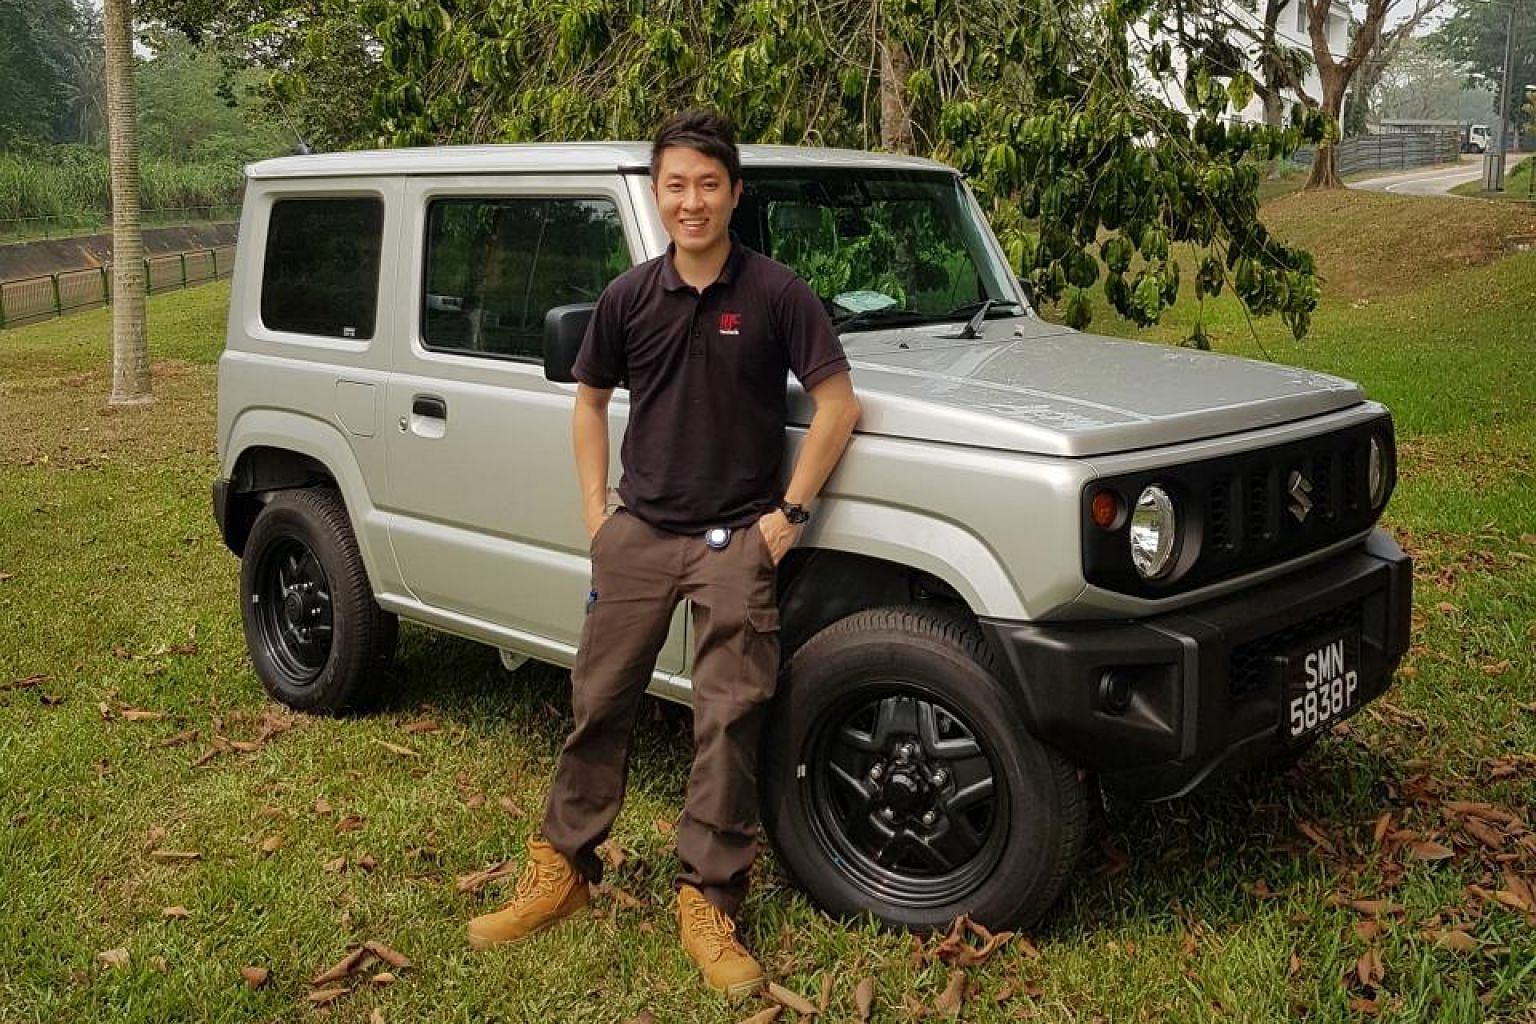 Mr Elijah Lin clocked 2,300km on the Suzuki Jimny in the first three weeks of ownership - more than double the national average.